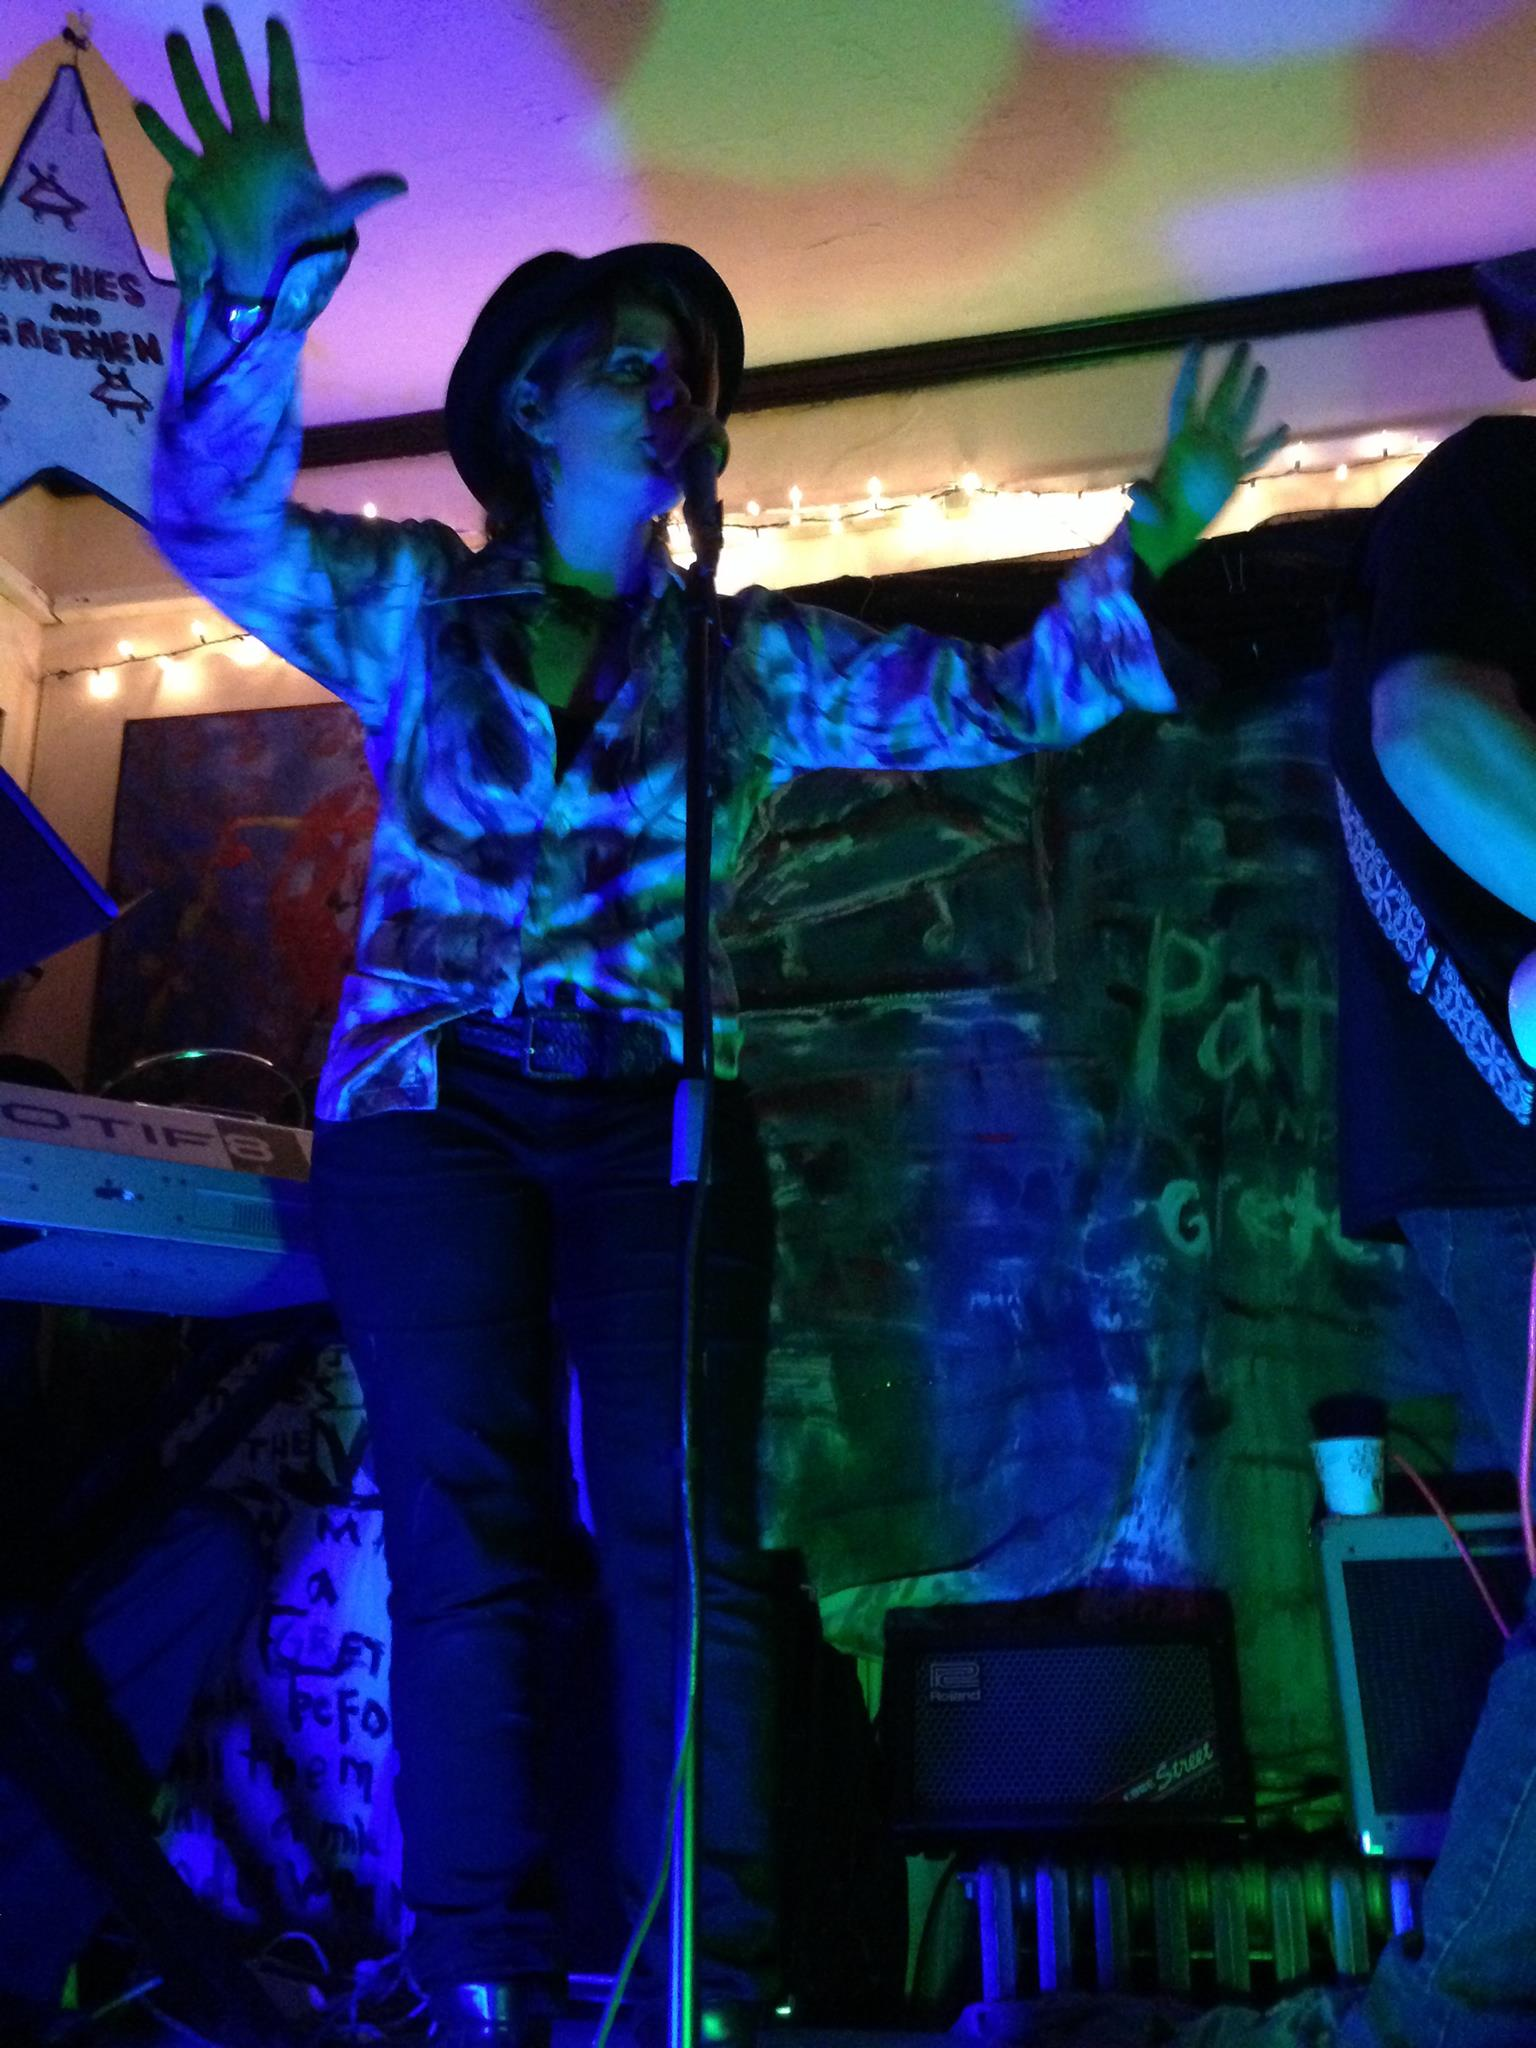 Gretchen Seichrist at Patches and Gretchen's CD RELEASE & CHICKEN COSTUME PARTY @ EVEN BREAK GALLERY / Minneapolis, Minnesota / October 26th, 2013 / Photo by Melissa Martin